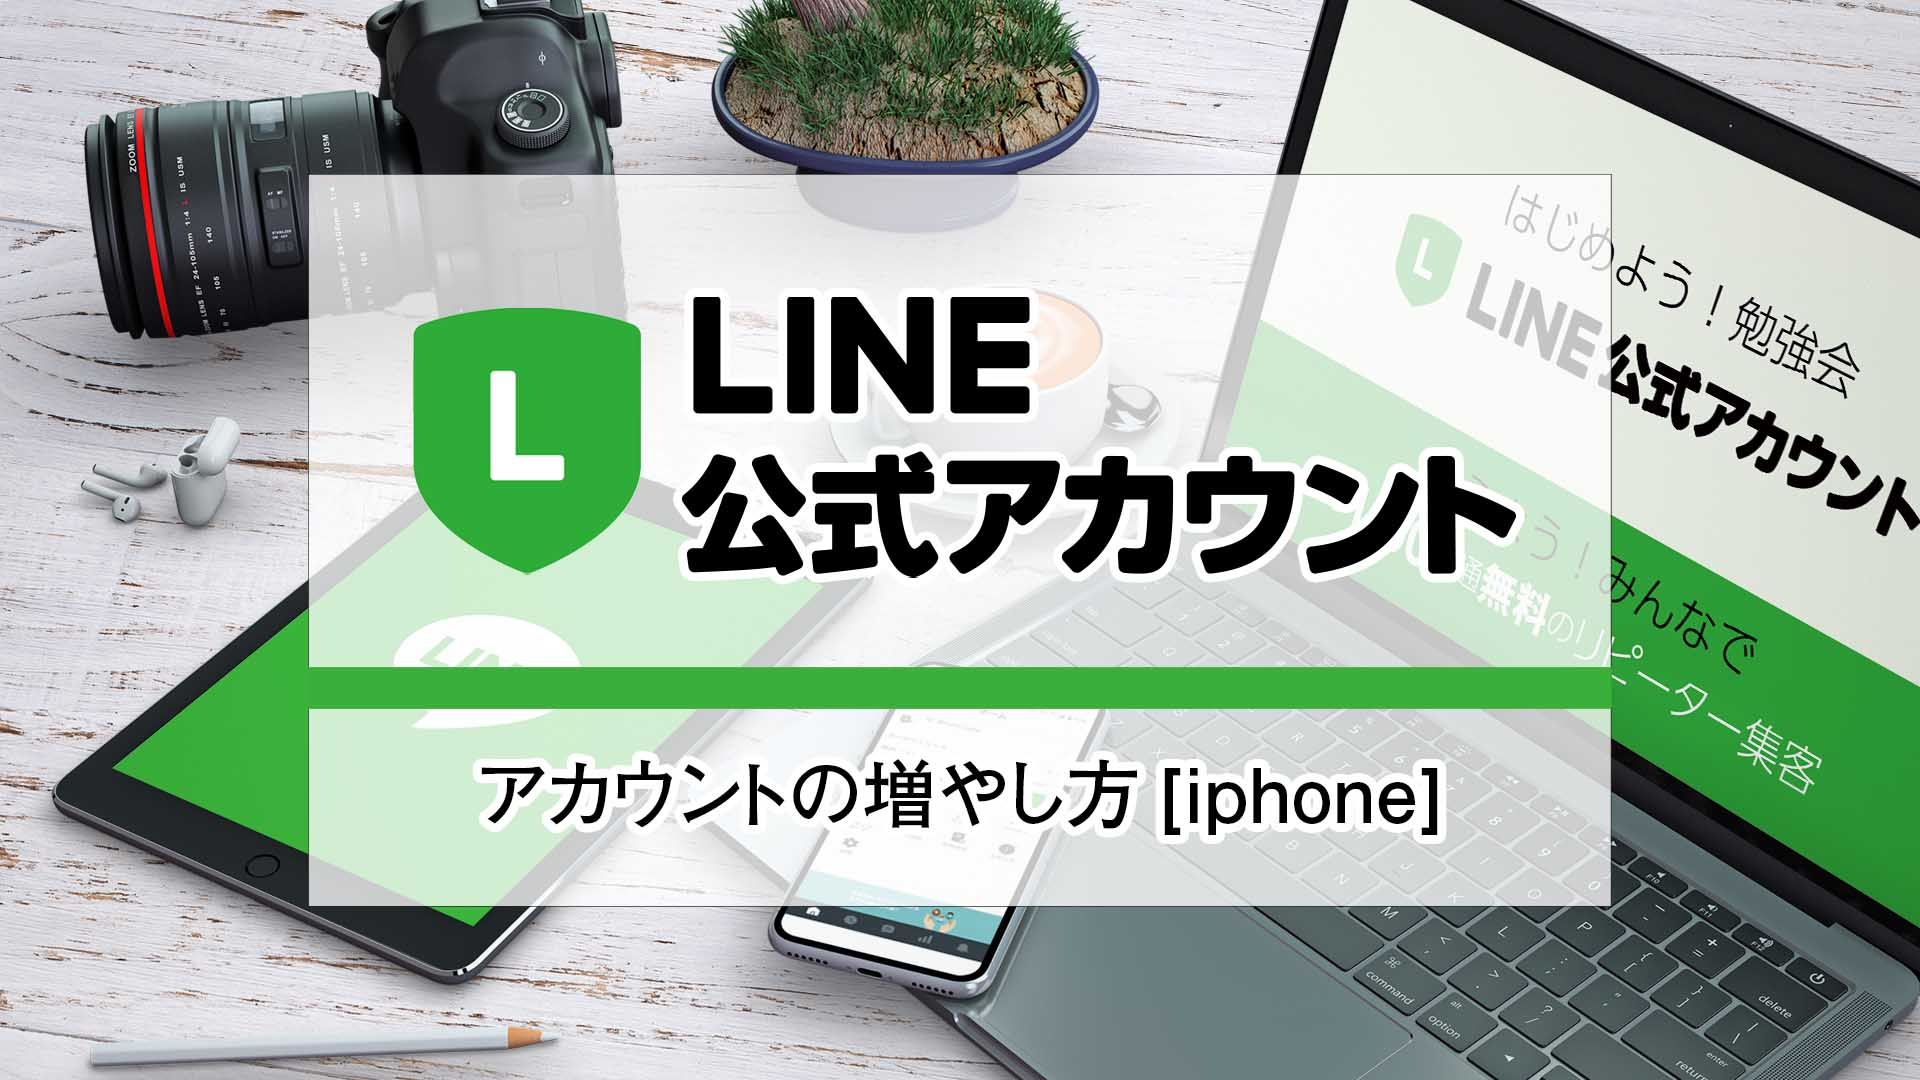 LINE_公式アカウント_増やし方[iphone]